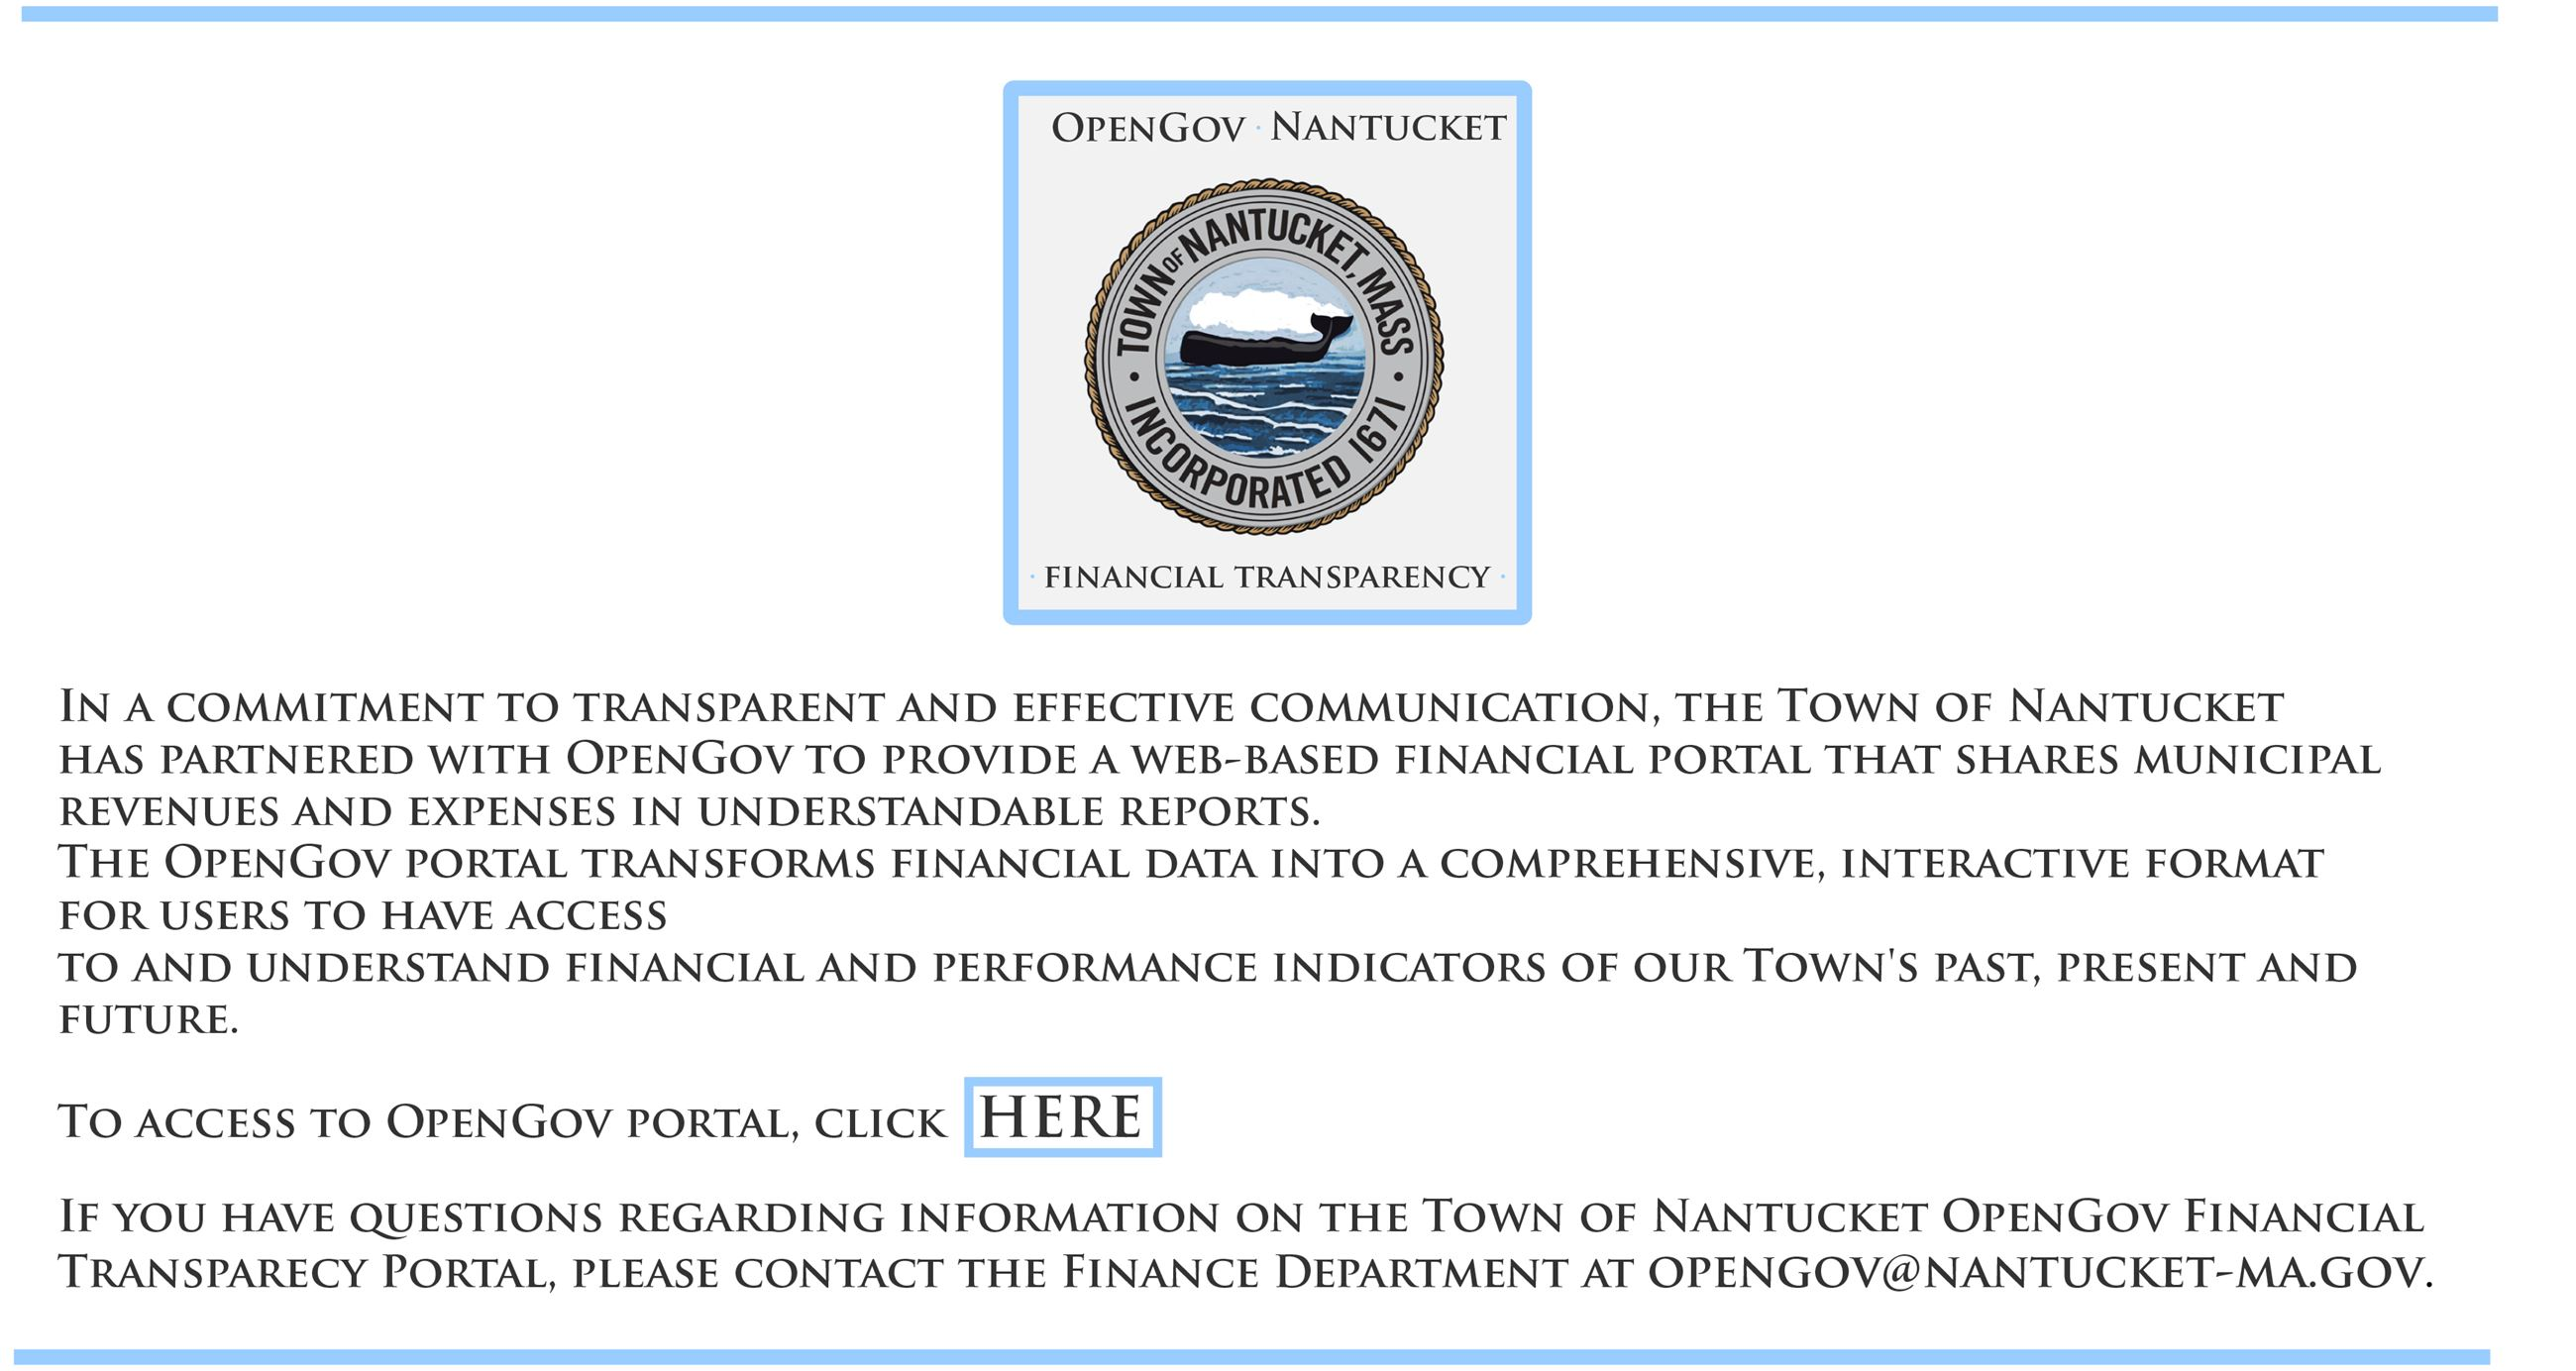 OpenGov Nantucket